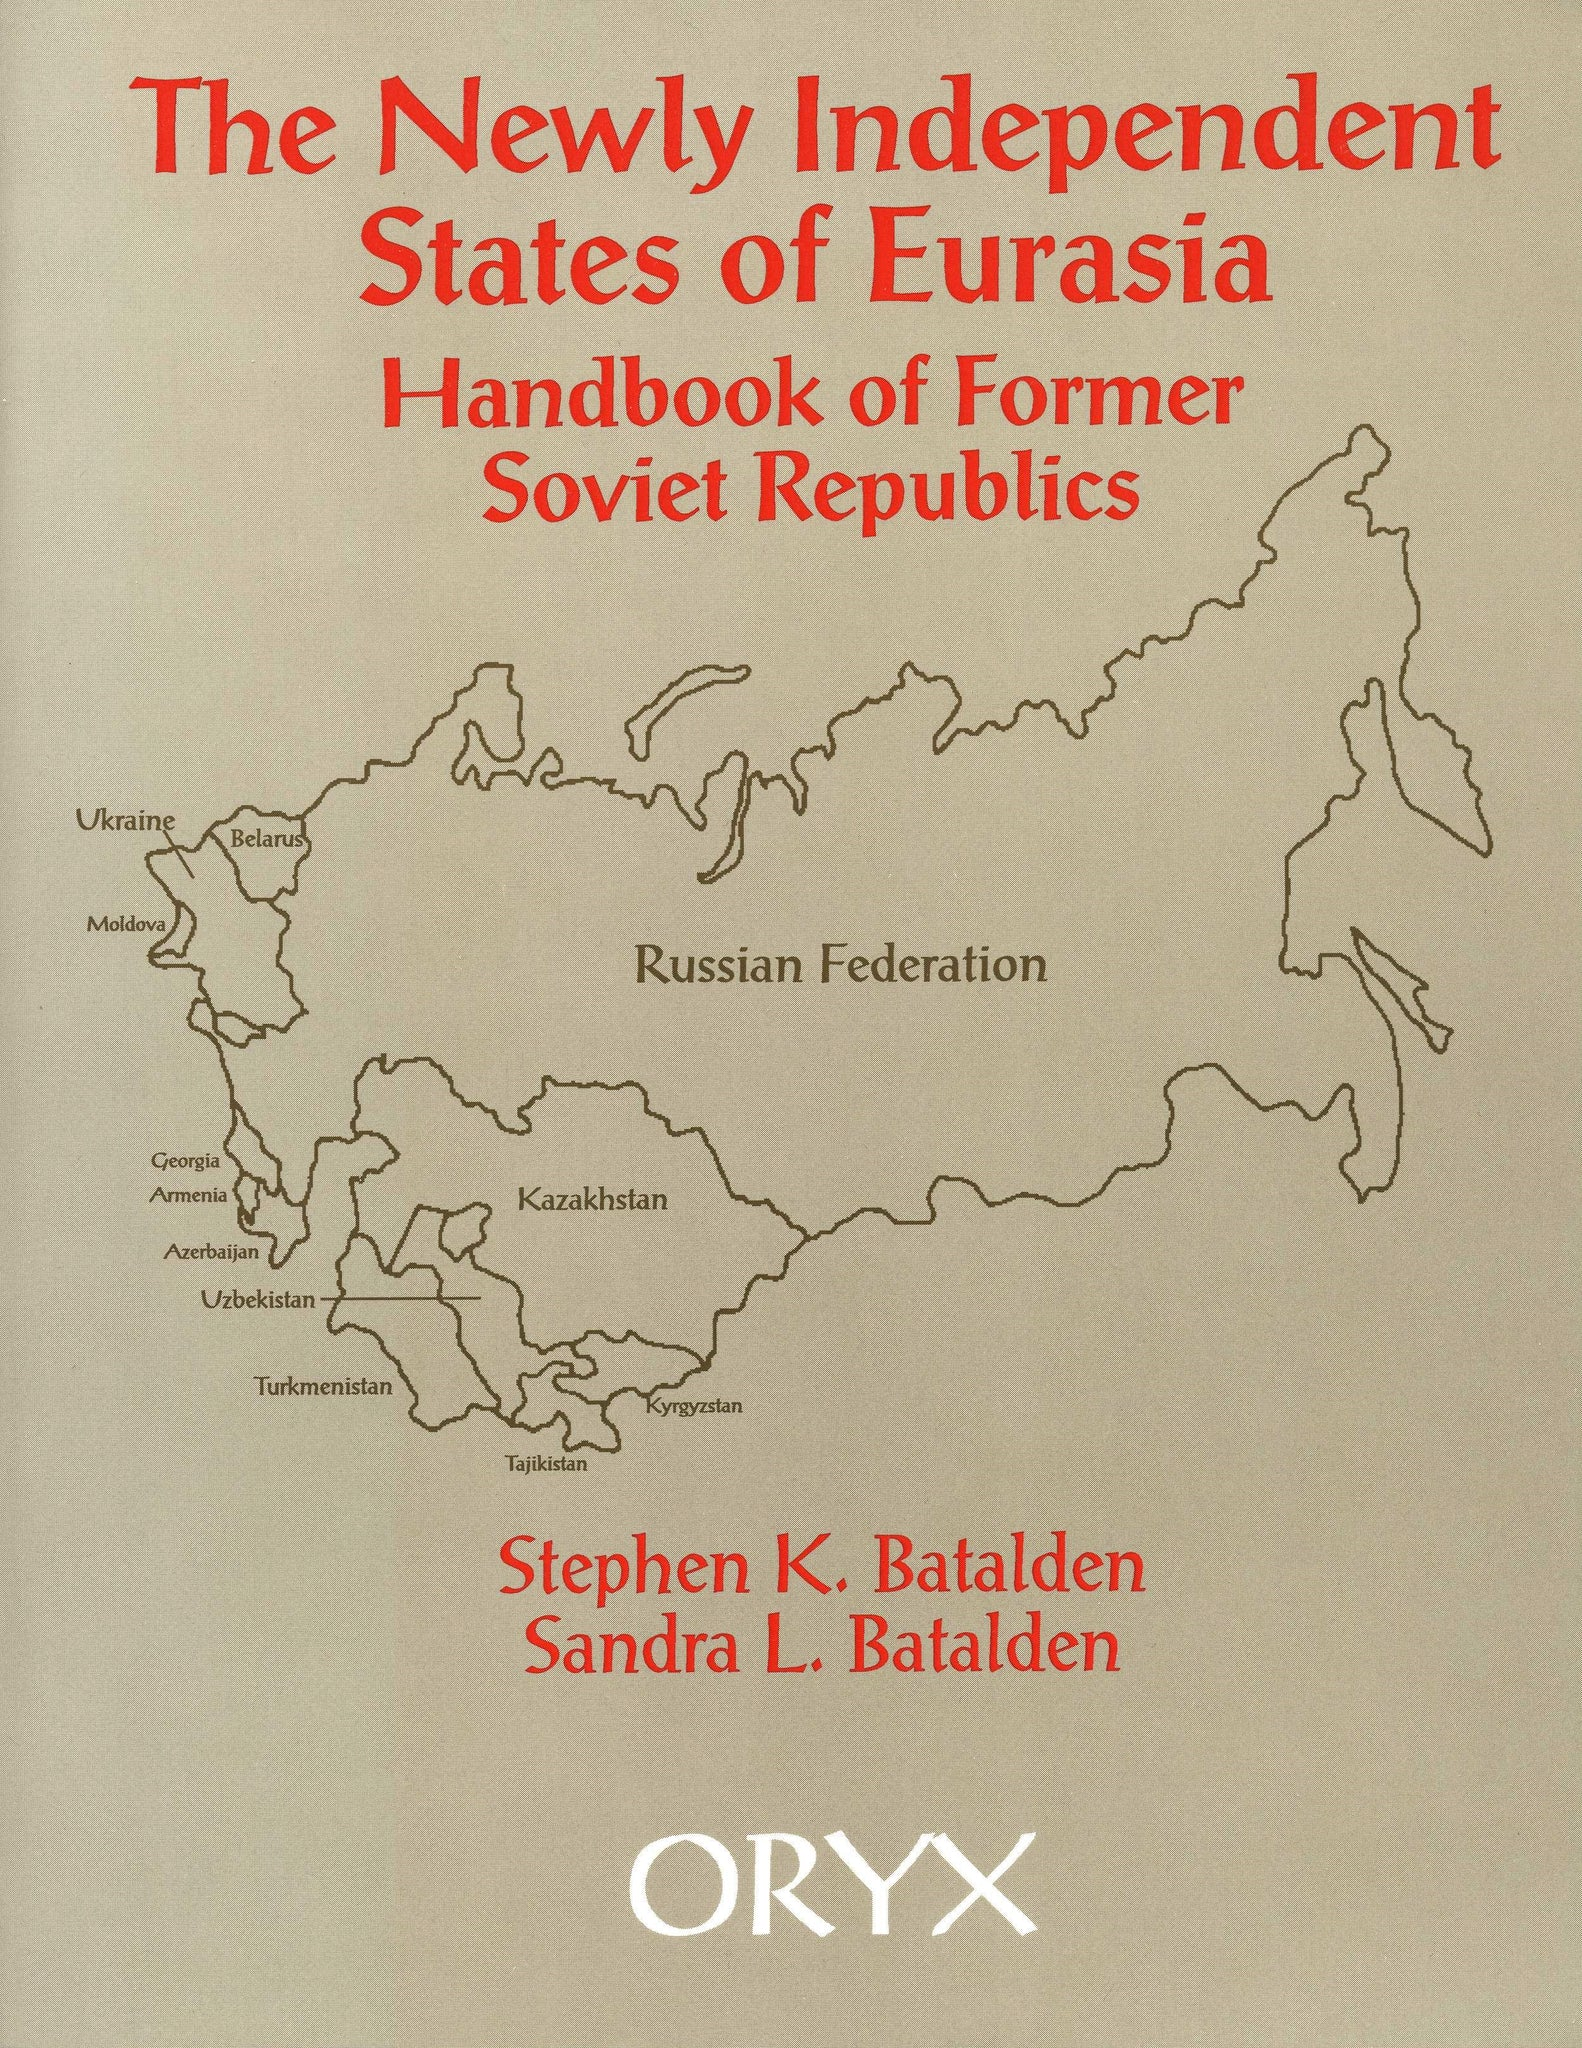 NEWLY INDEPENDENT STATES OF EURASIA: A Handbook of Former Soviet Republics